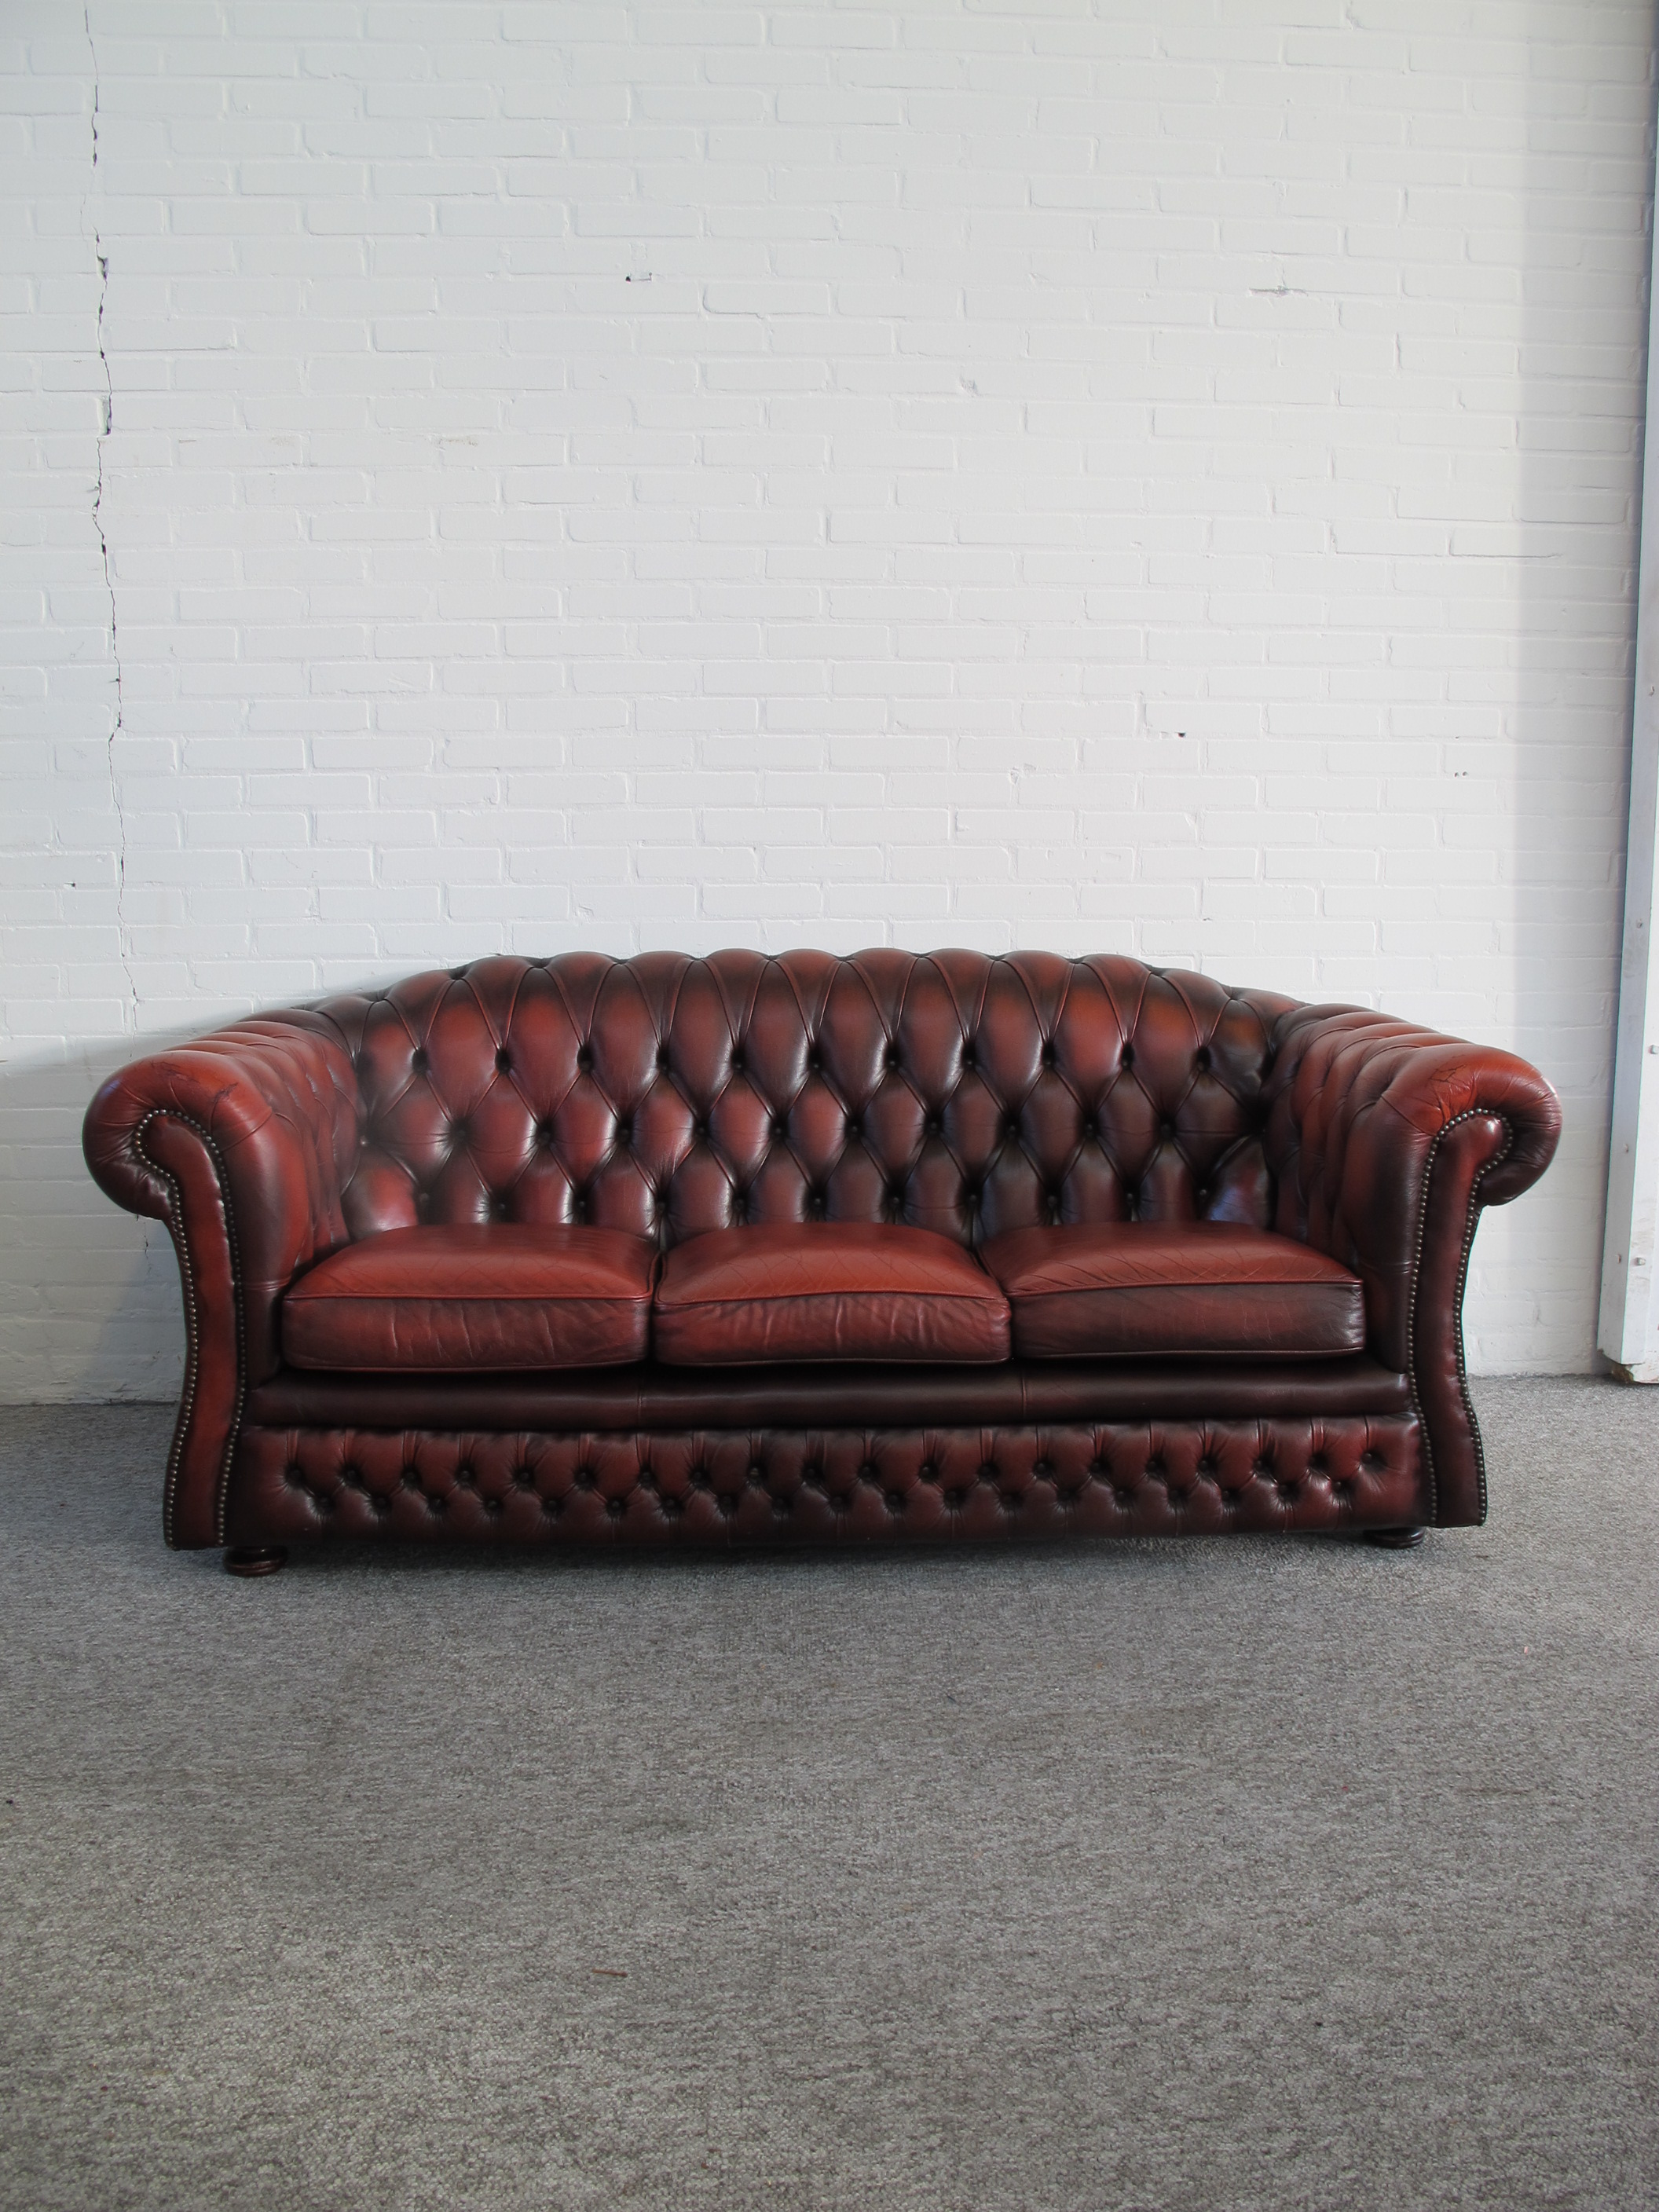 Engelse Chesterfield bank Oxblood rood leder vintage midcentury